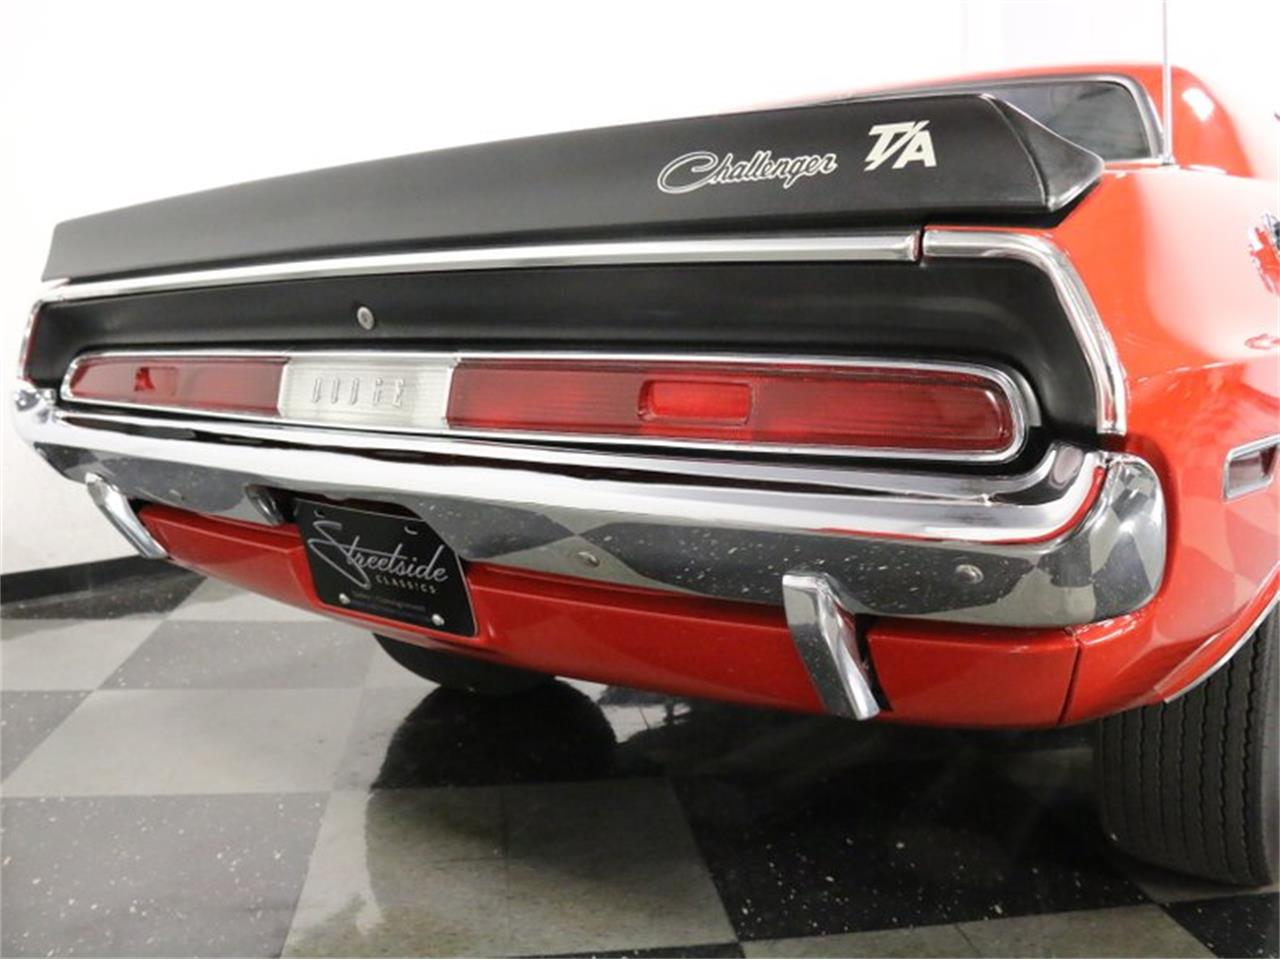 Large Picture of 1970 Dodge Challenger T/A located in Ft Worth Texas - $69,995.00 - N7CT